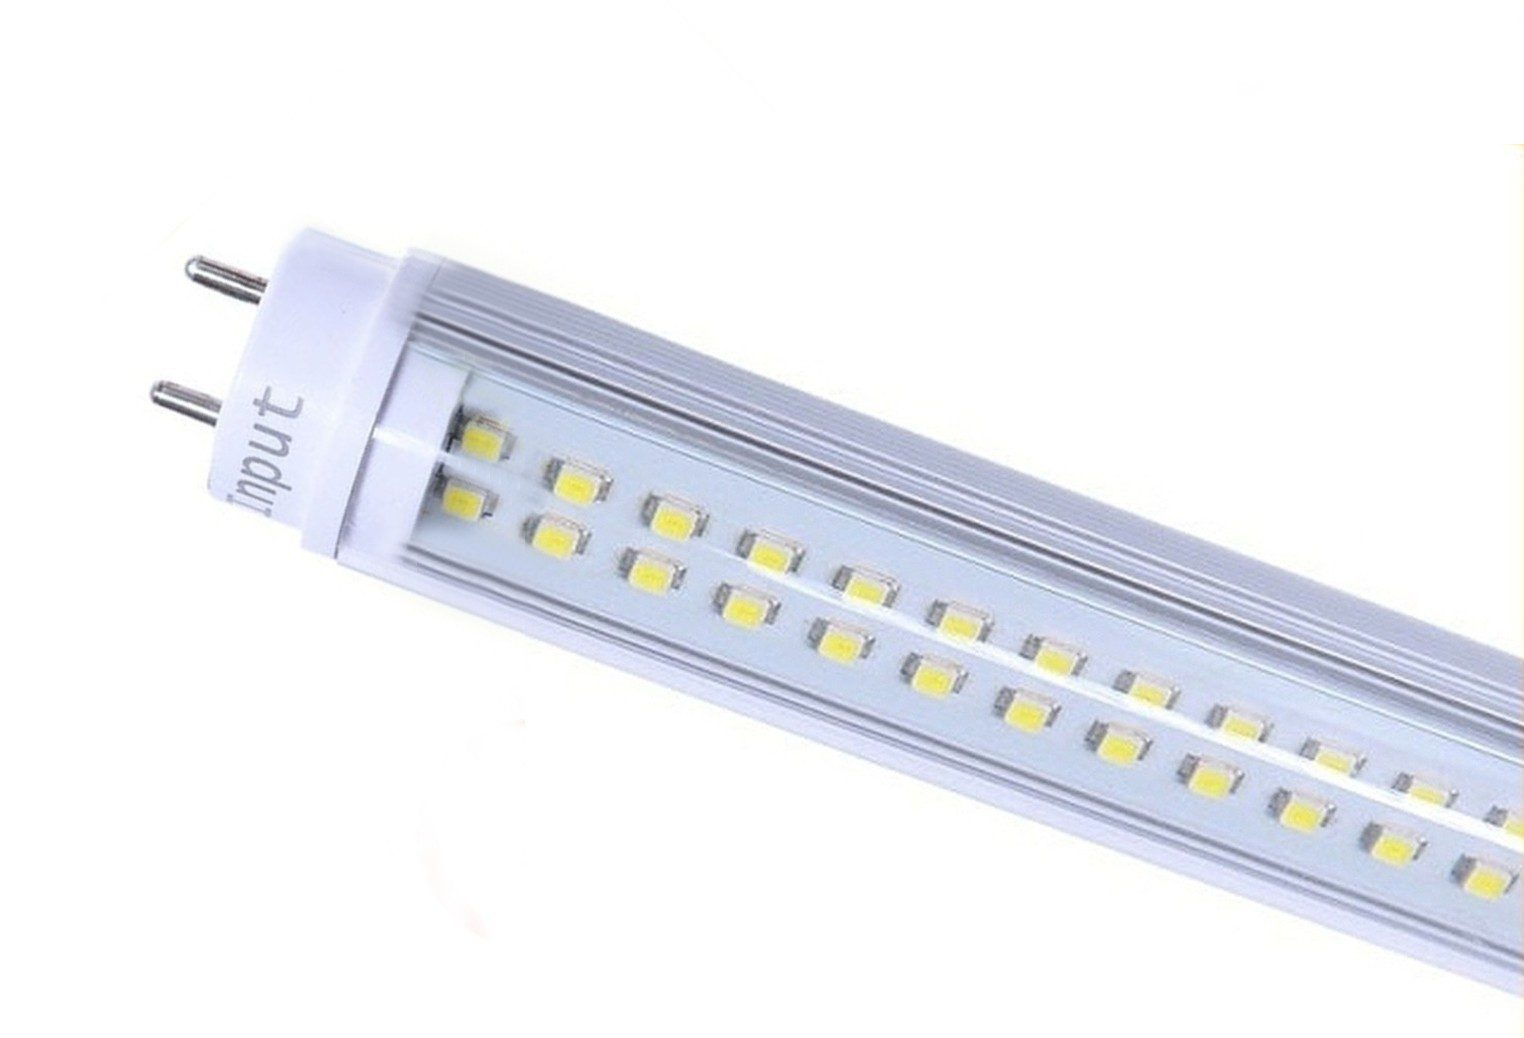 How To Rewire T12 Or T8 Fluorescent Fixtures For T8 Led Lamps